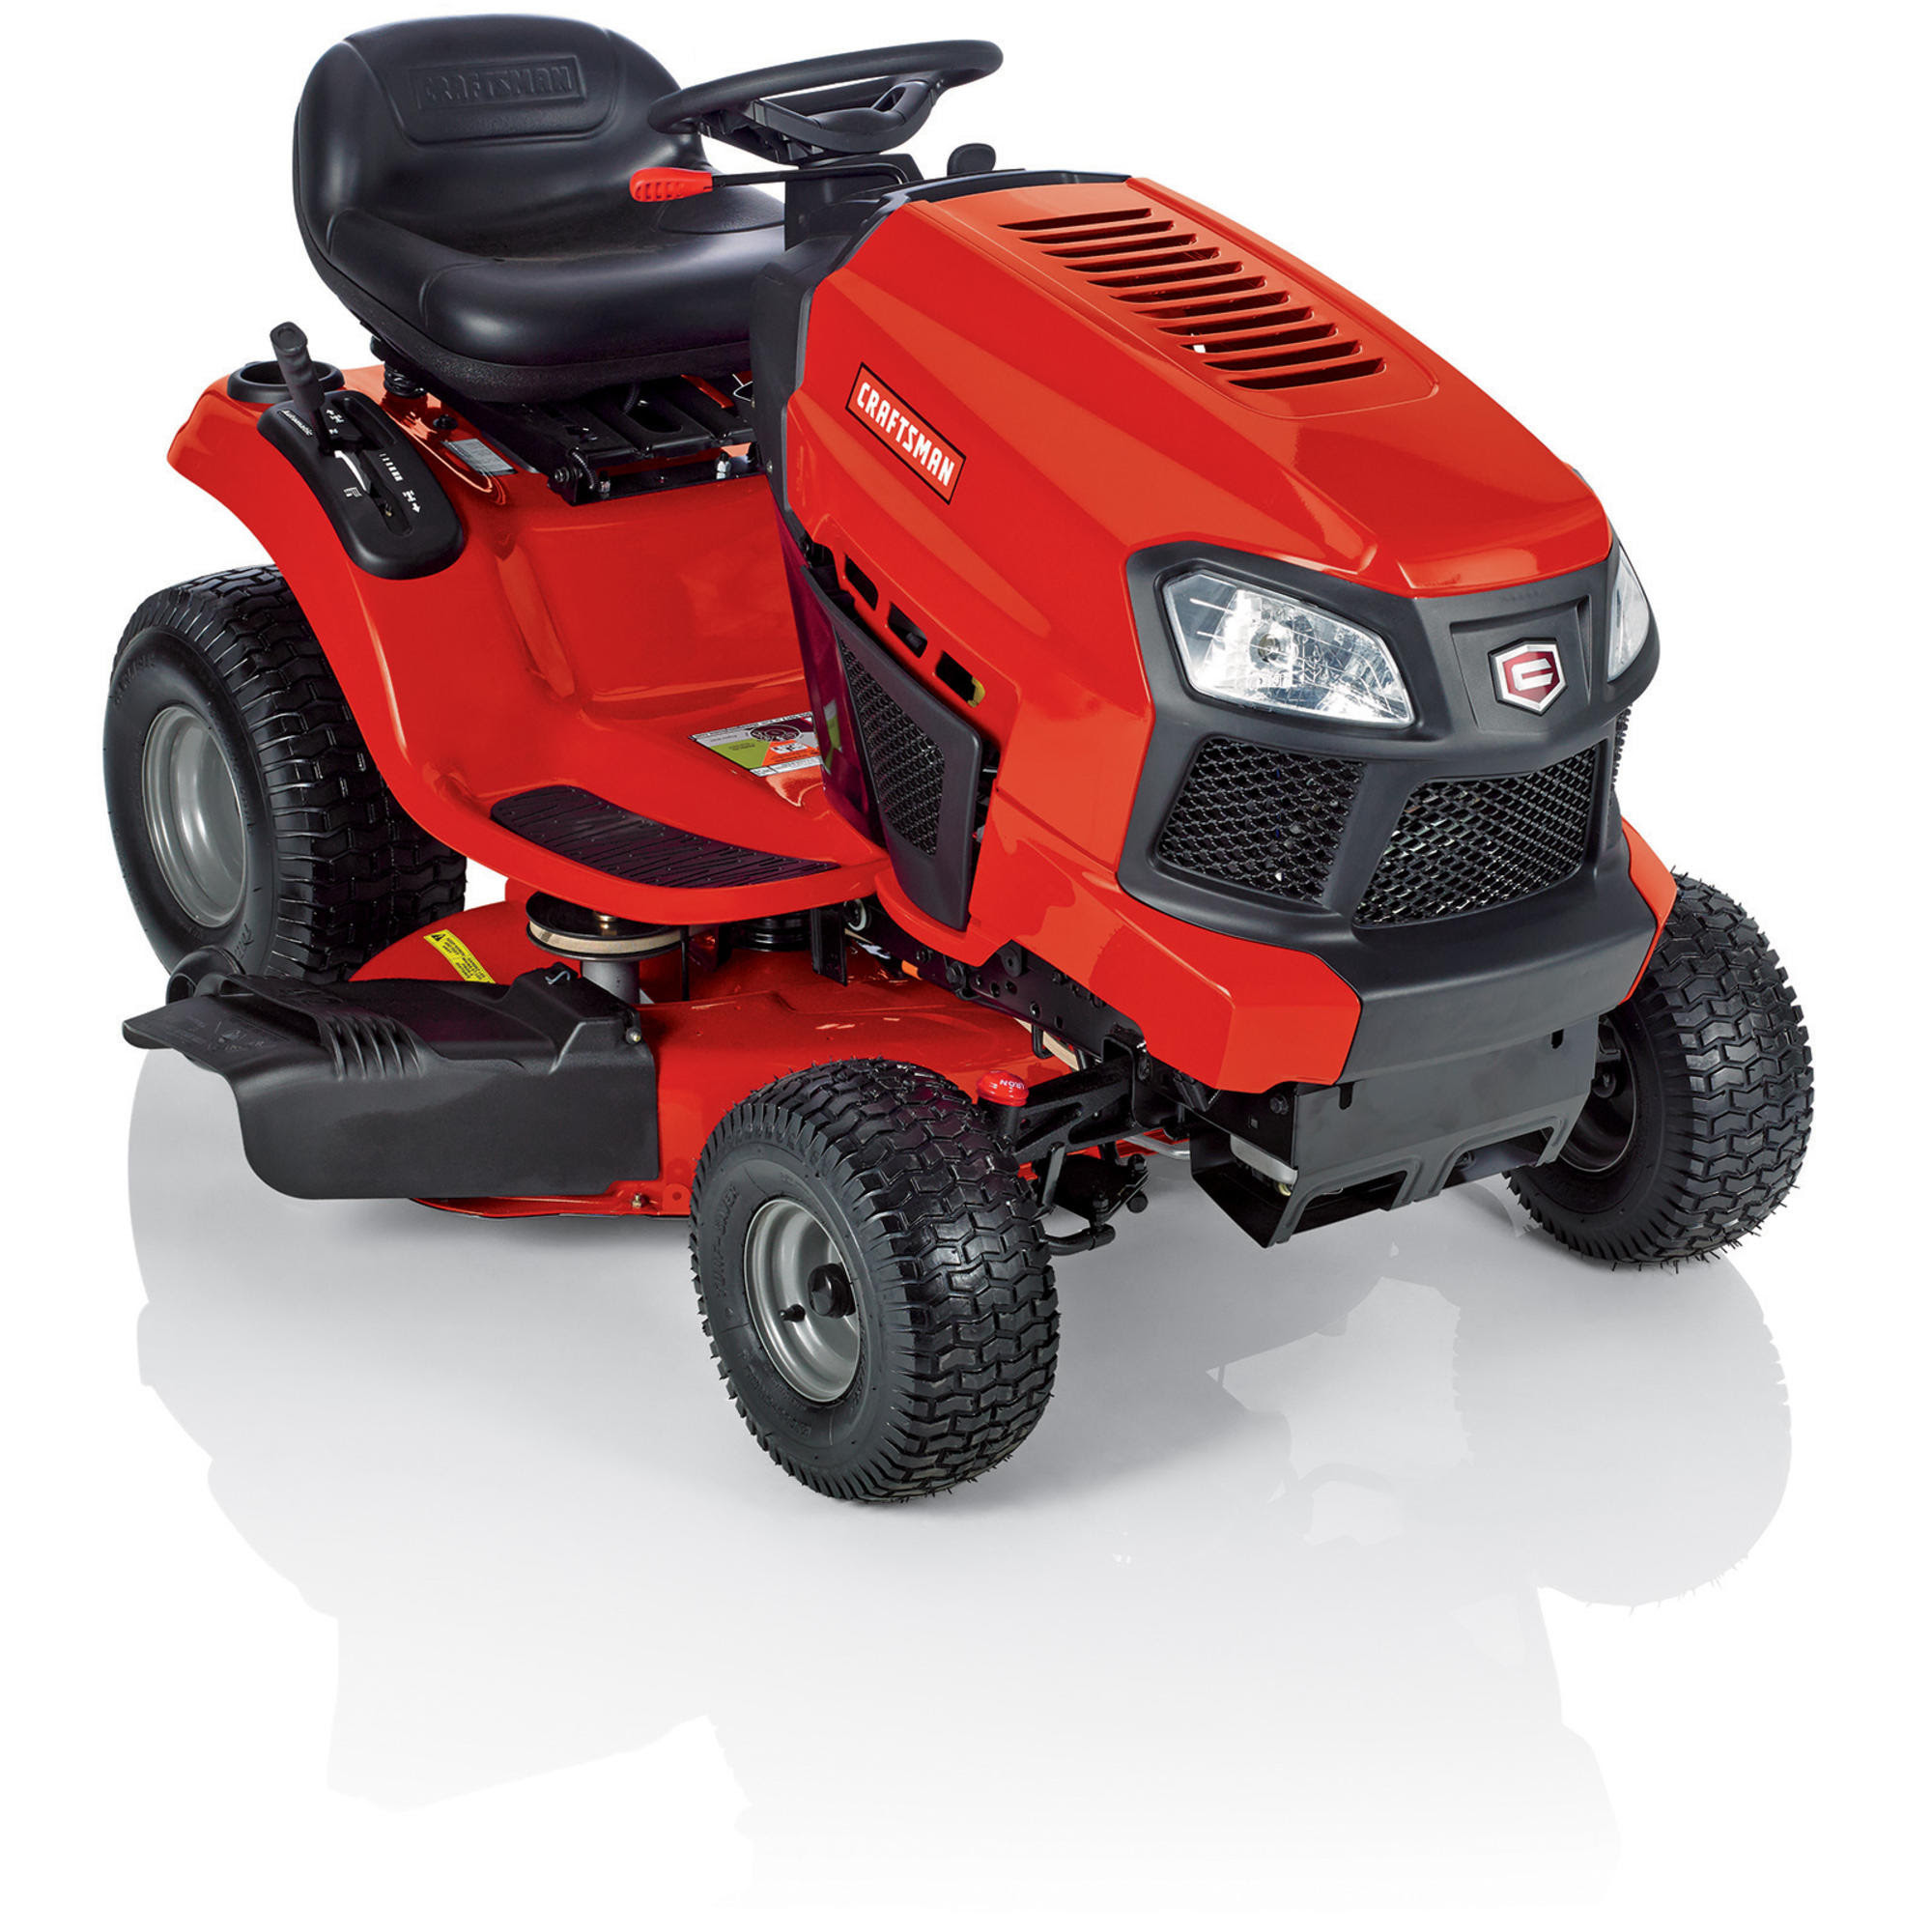 UPC Craftsman 42 in Turn Tight Automatic Riding